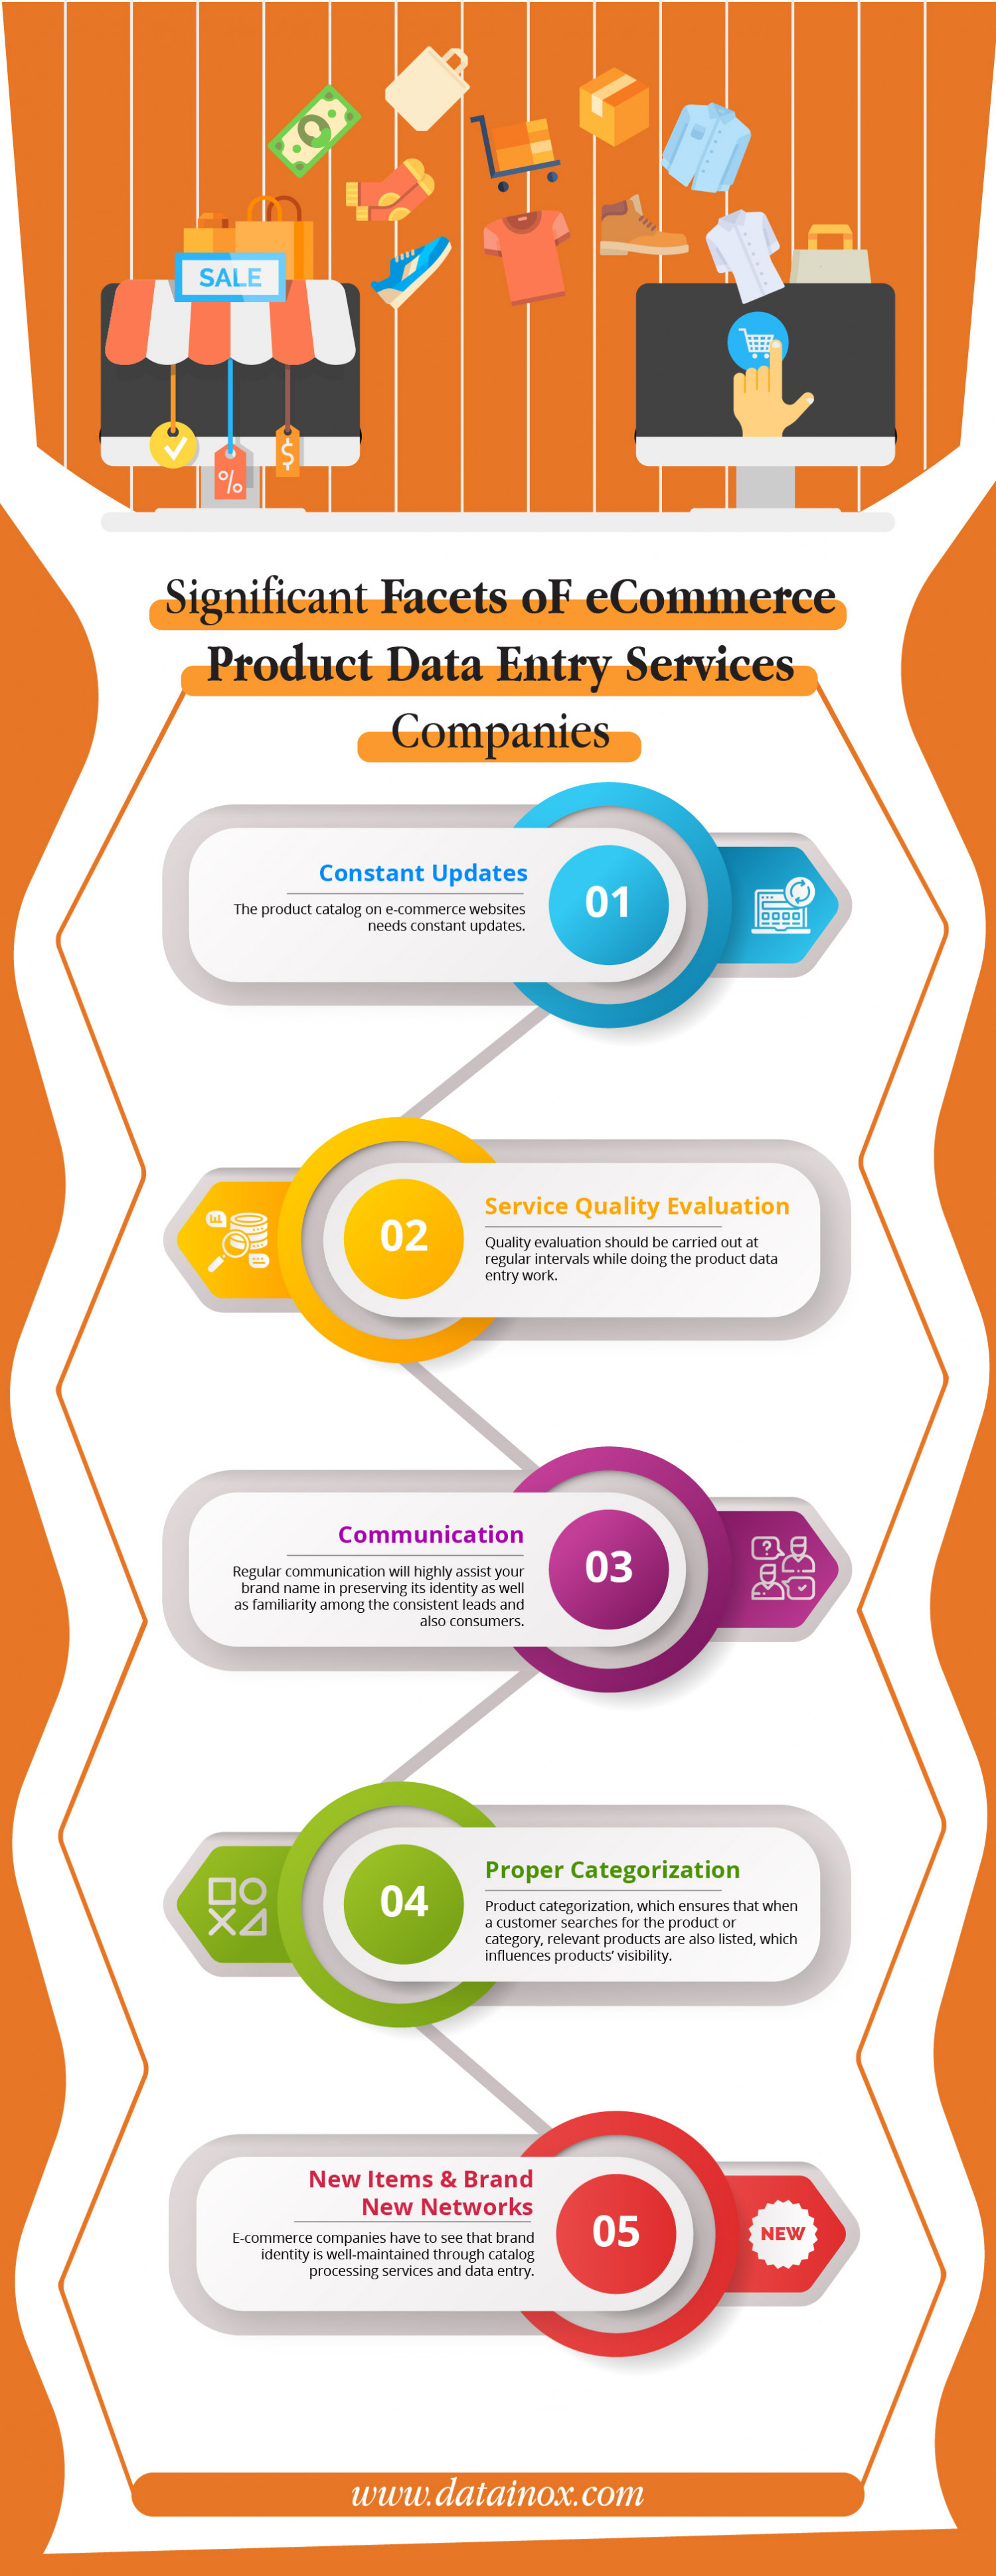 Significant Facets oF eCommerce Product Data Entry Services Companies Infographic